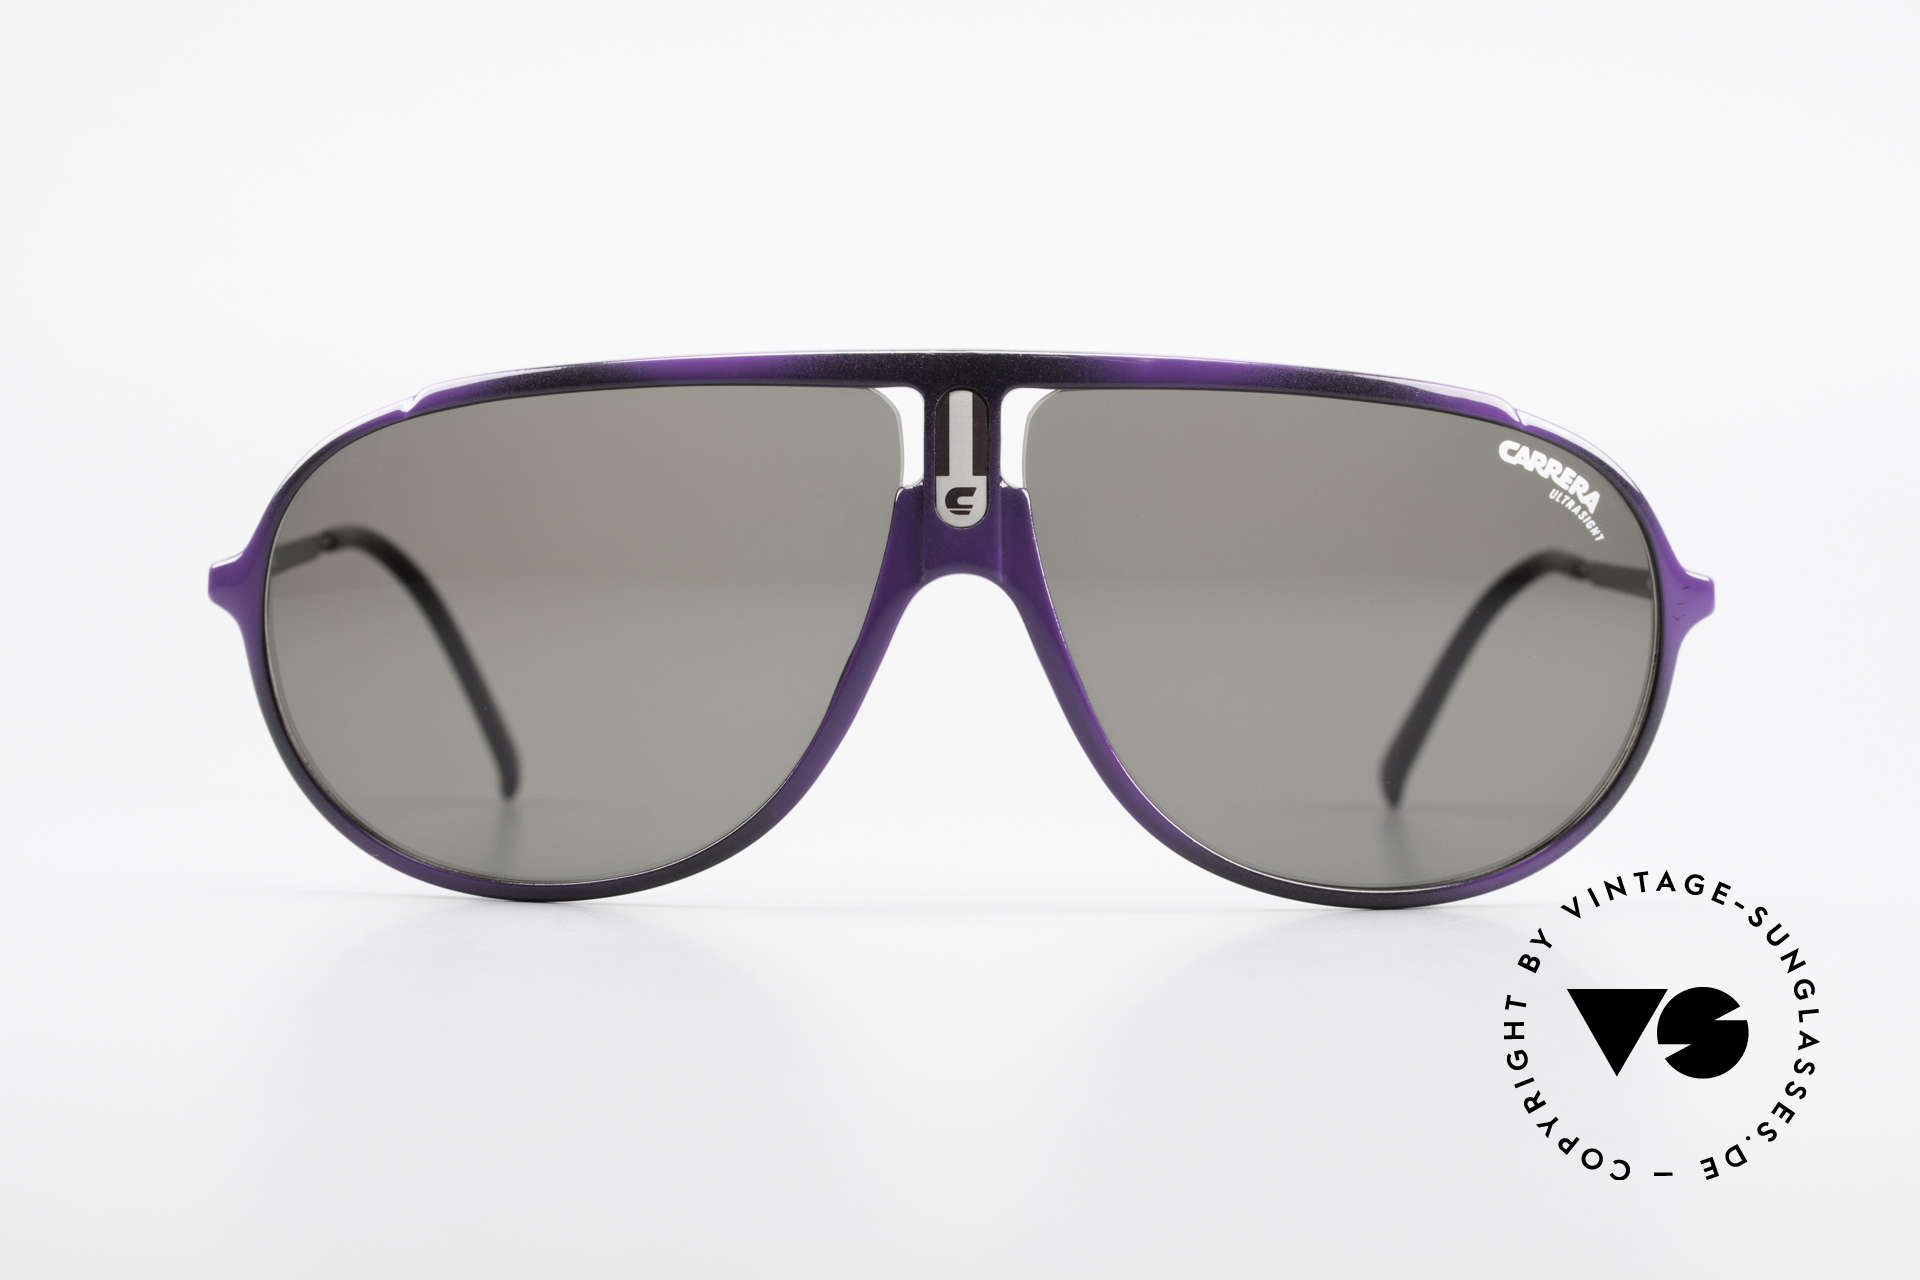 Carrera 5467 Carbon Fibre Shades Vintage, lightweight and very sturdy frame (carbon fibre), Made for Men